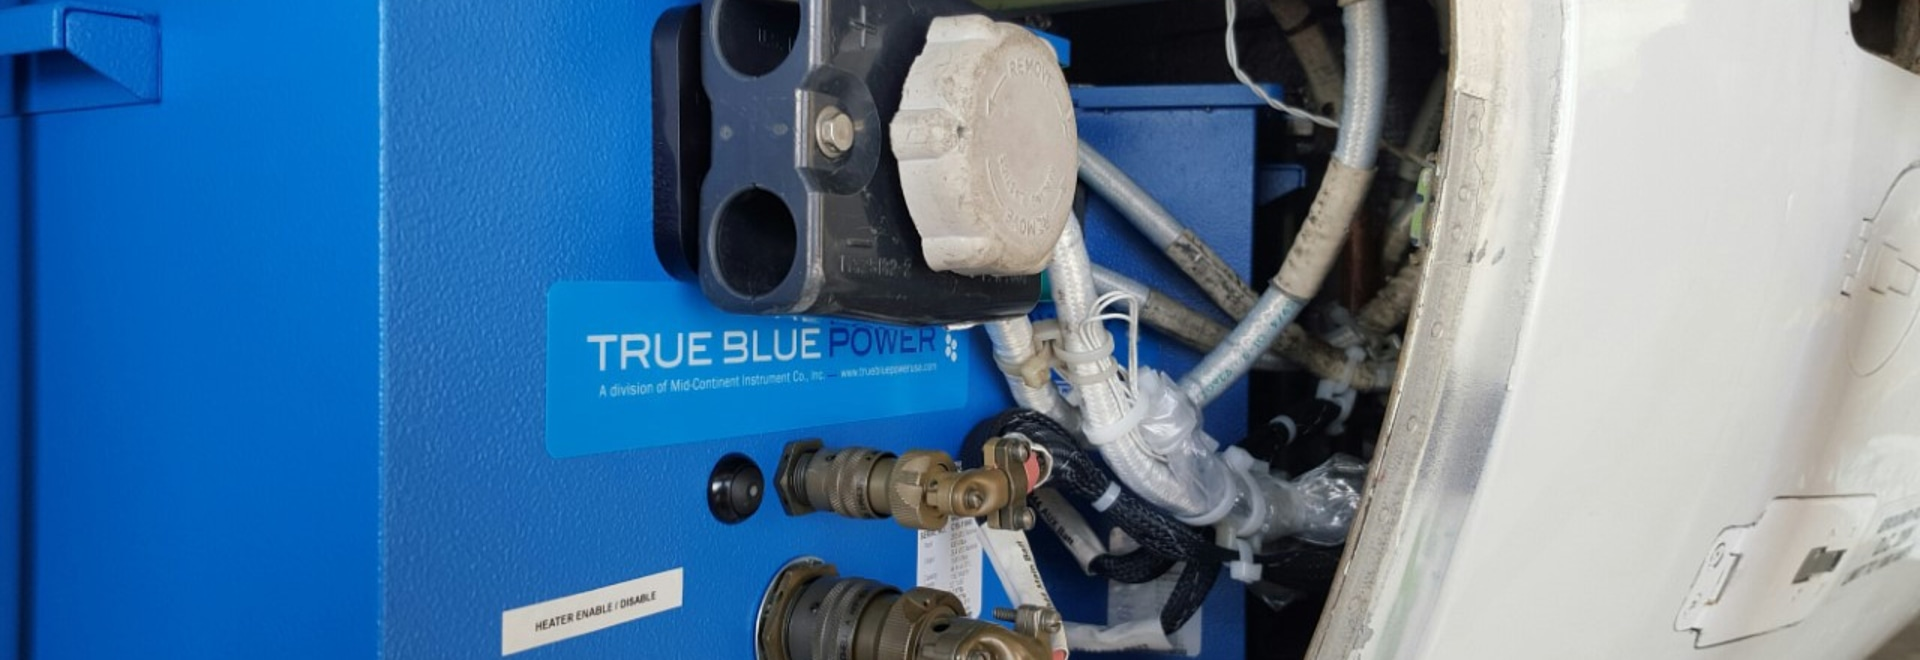 faa certifies true blue power lithium ion main ship batteries on